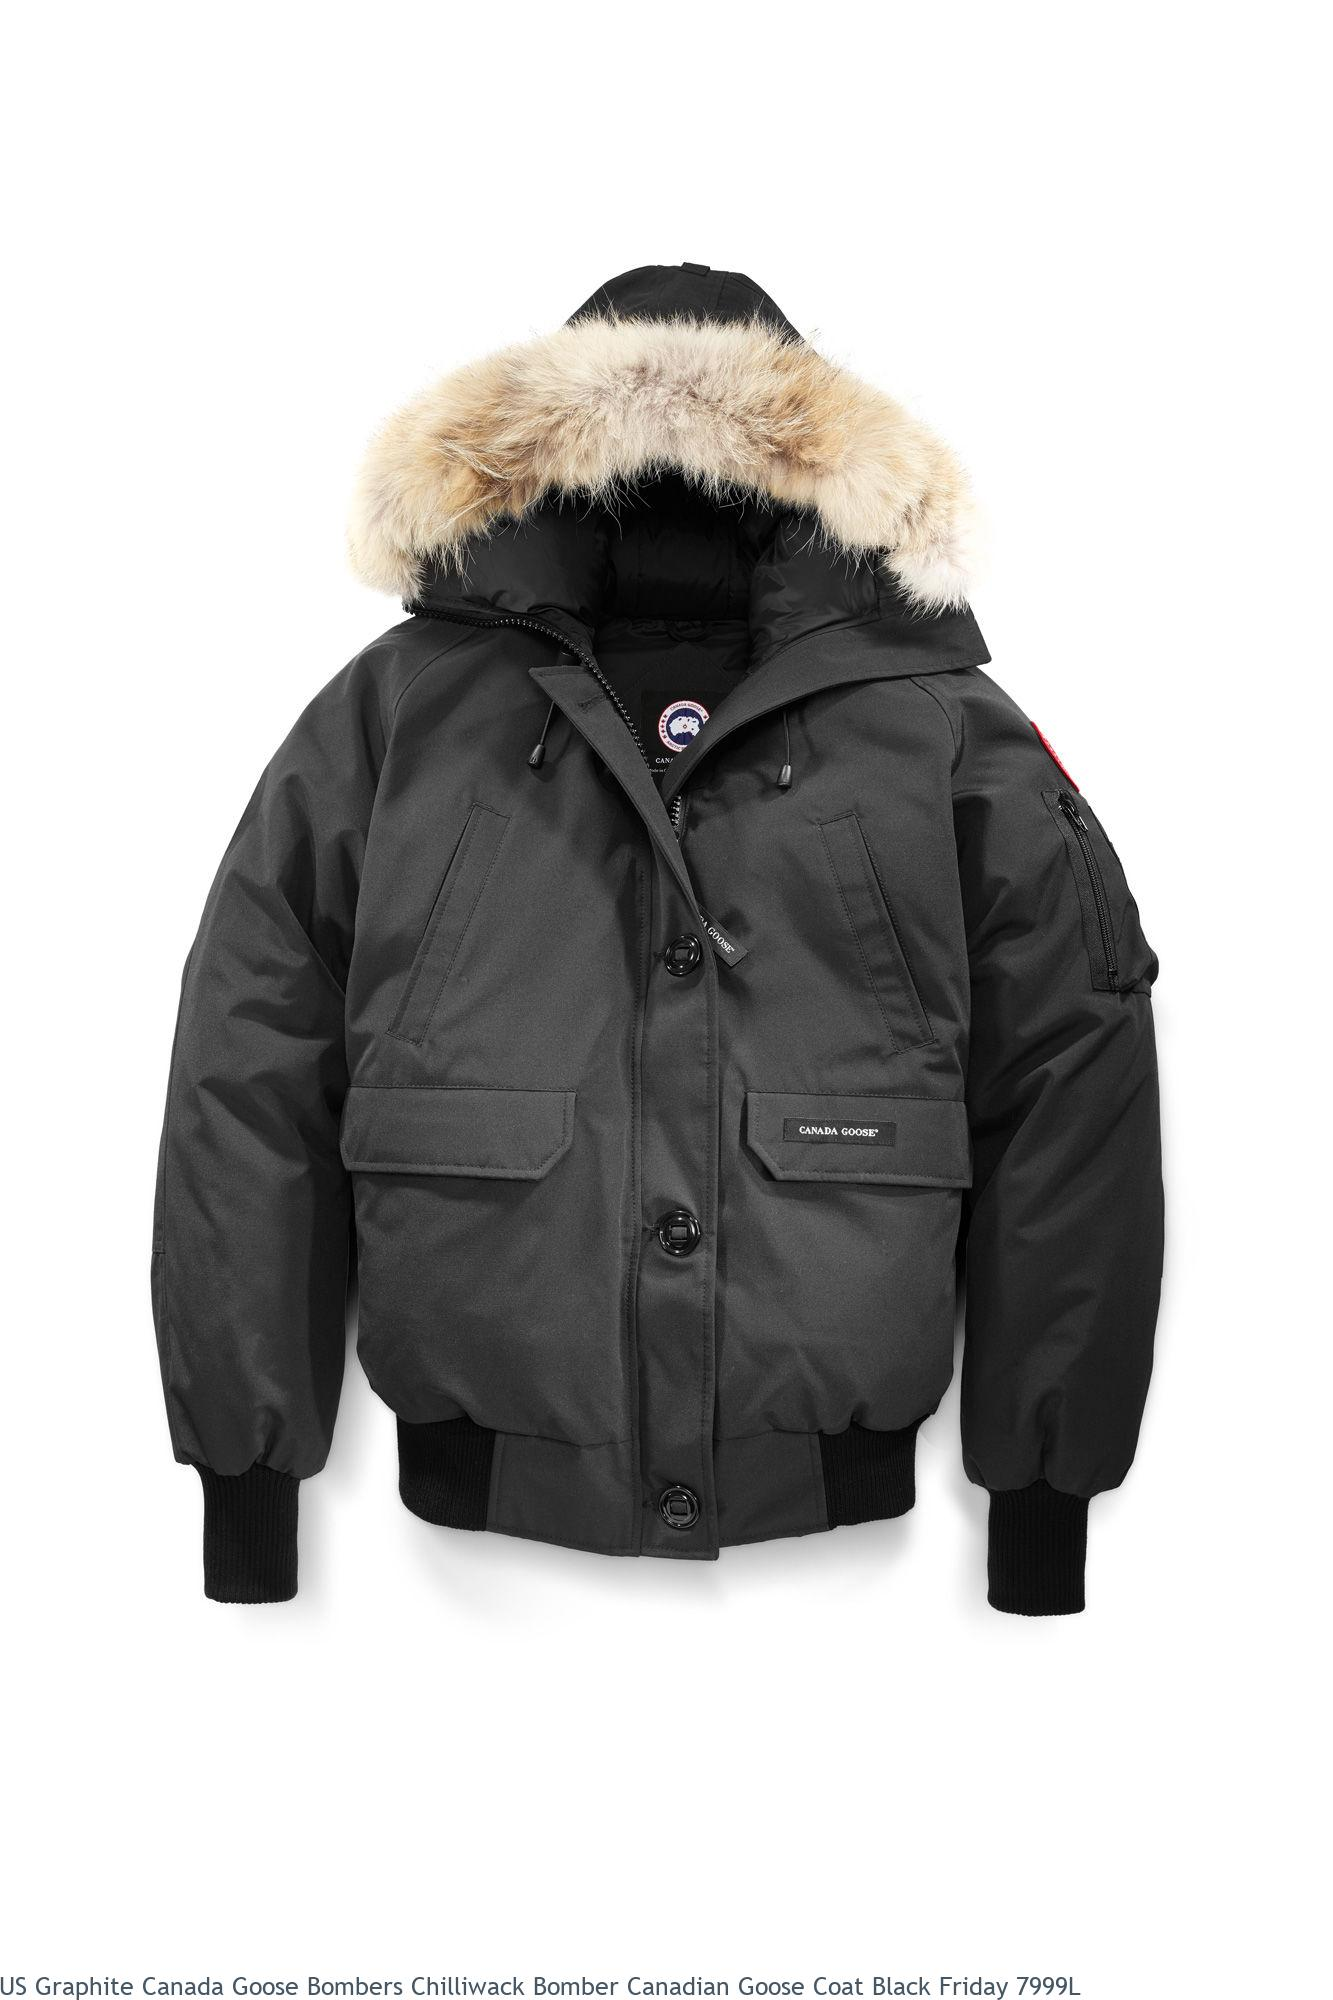 Us Graphite Canada Goose Bombers Chilliwack Bomber Canadian Goose Coat Black Friday 7999l Cheap Canada Goose Jackets Outlet Sale Online Store Free Shipping Up To 80 Off